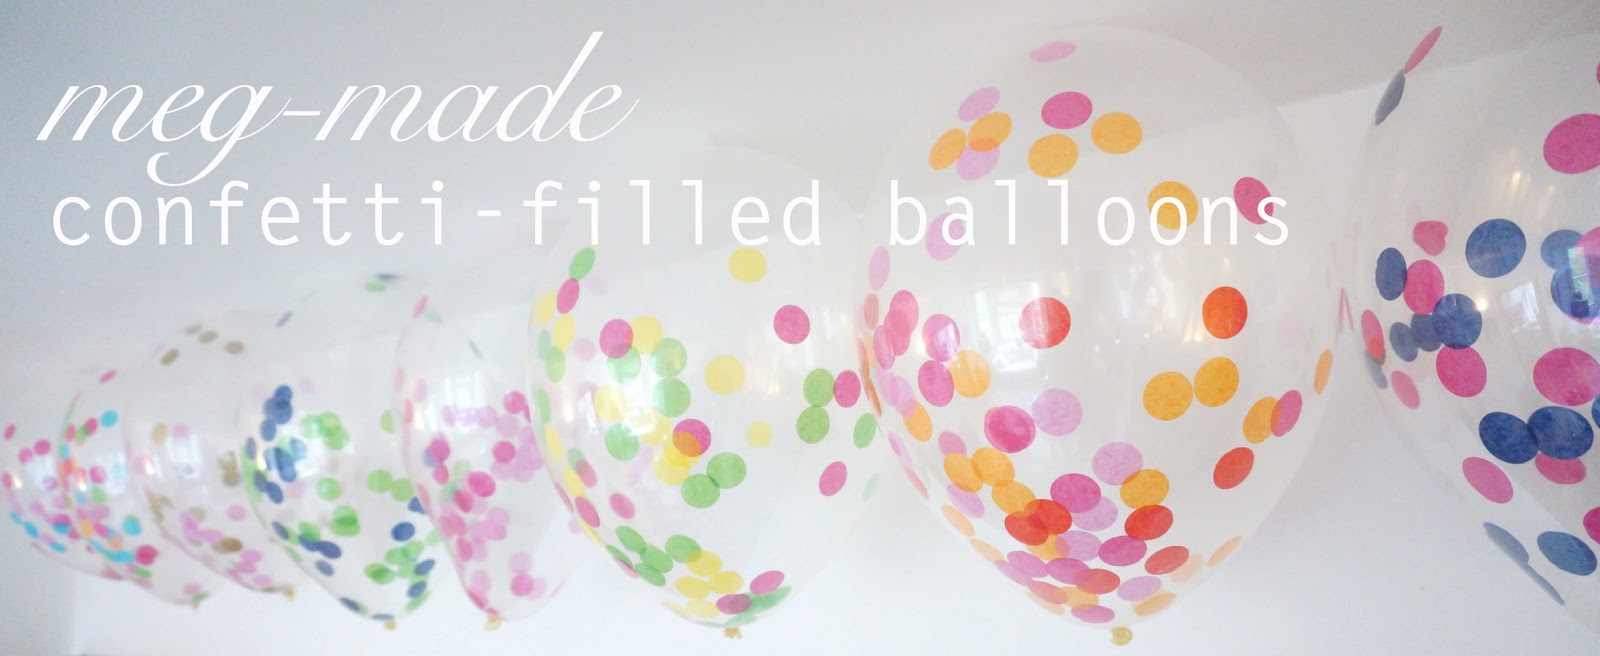 meg-made confetti-filled balloons